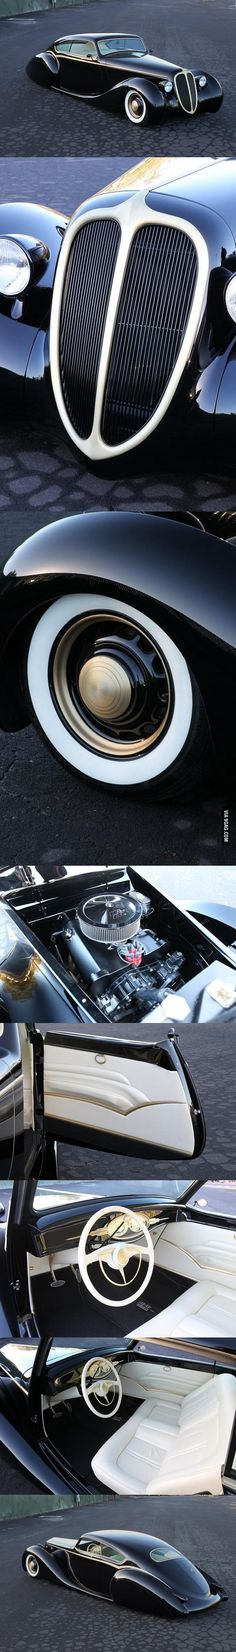 "Metallica's James Hetfield's custom built car, the ""Black Pearl"""